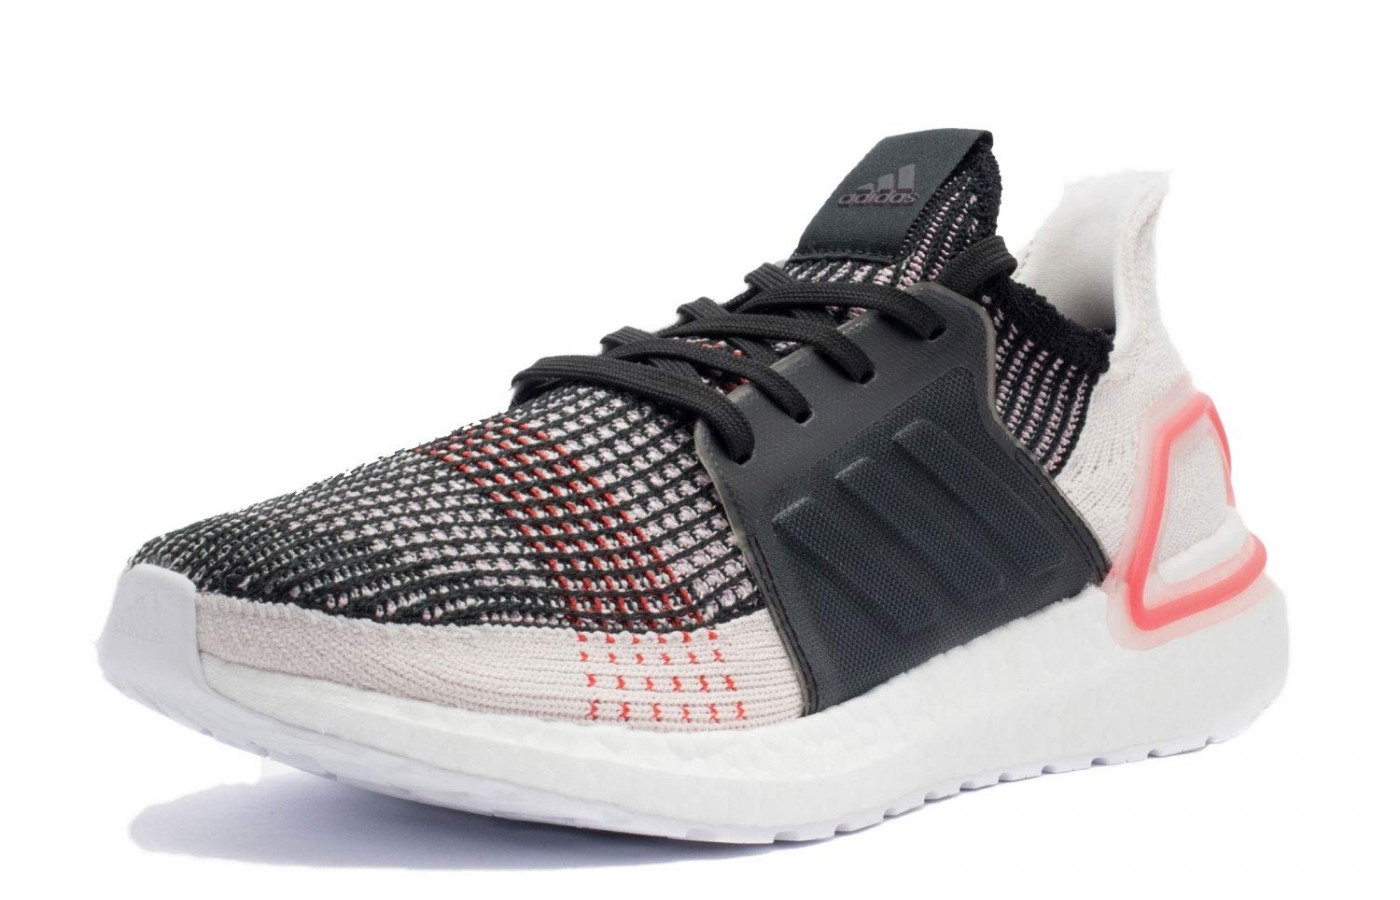 eec2c3f7652 Adidas Ultraboost 19 Reviewed   Rated in 2019